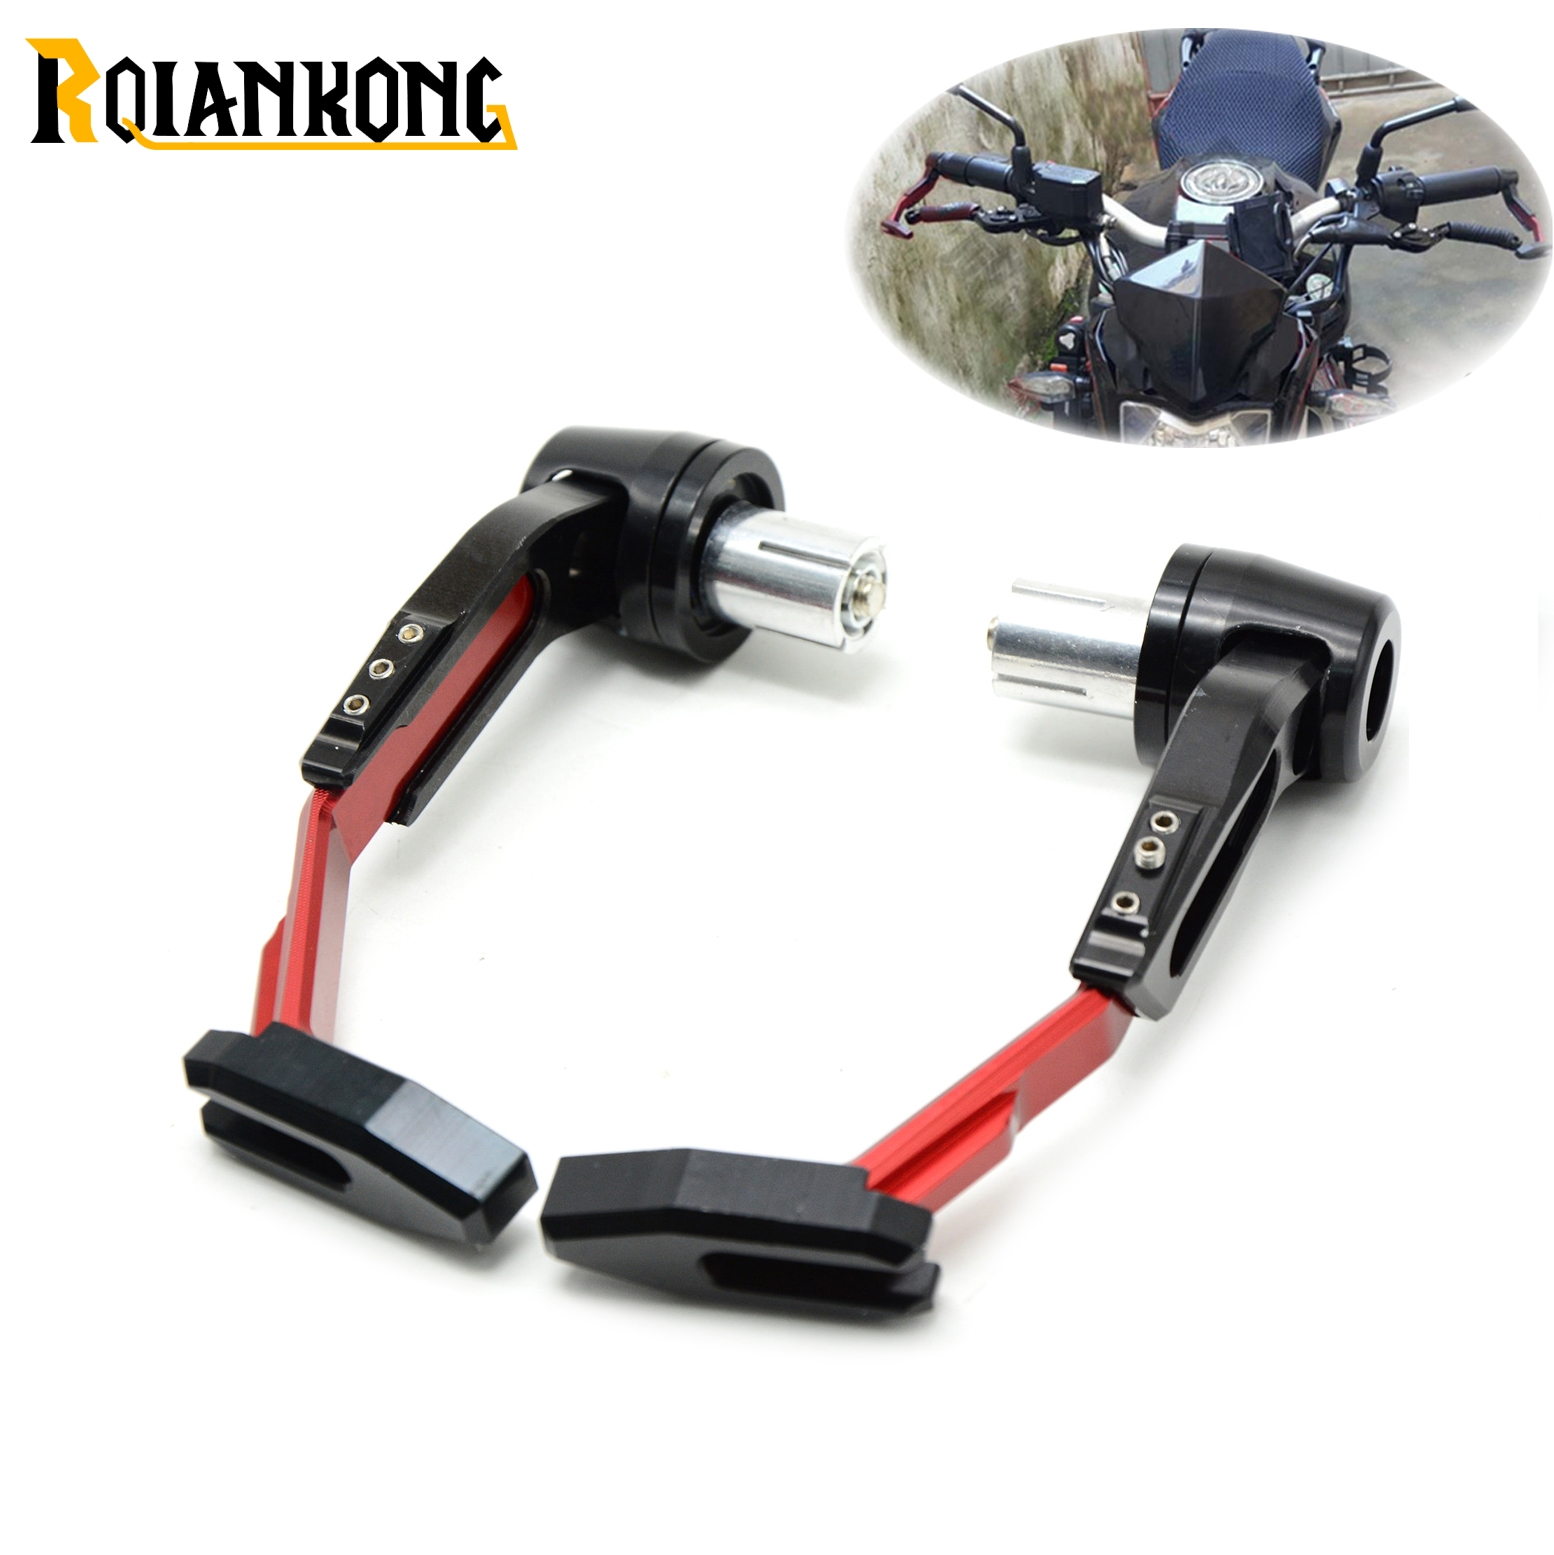 Universal 7/822mm Motorcycle Handlebar Clutch Brake Lever Protect Guard for BMW F R K 650 700 800 1200 1300 GS R RS Adventure bjmoto universal 7 8 22mm handlebar brake clutch protect motorcycle lever guard proguard for bmw hp4 r1200rs s1000rr k1300gt